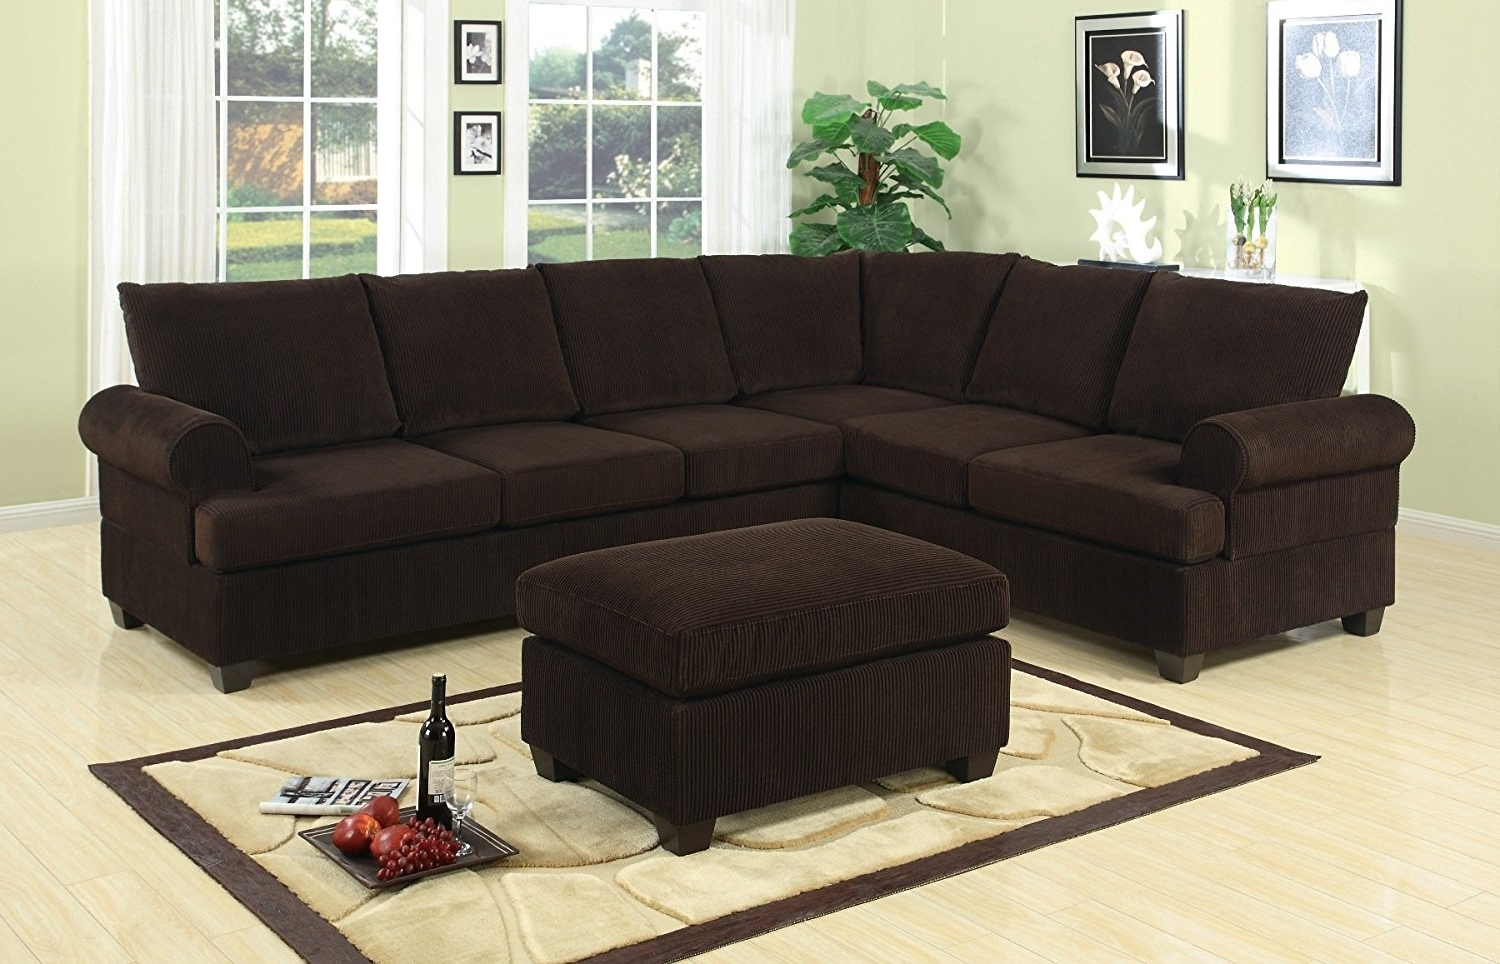 Most Recently Released Jacksonville Florida Sectional Sofas Within Sectional Sofas Jacksonville Fl – Home And Textiles (View 9 of 20)